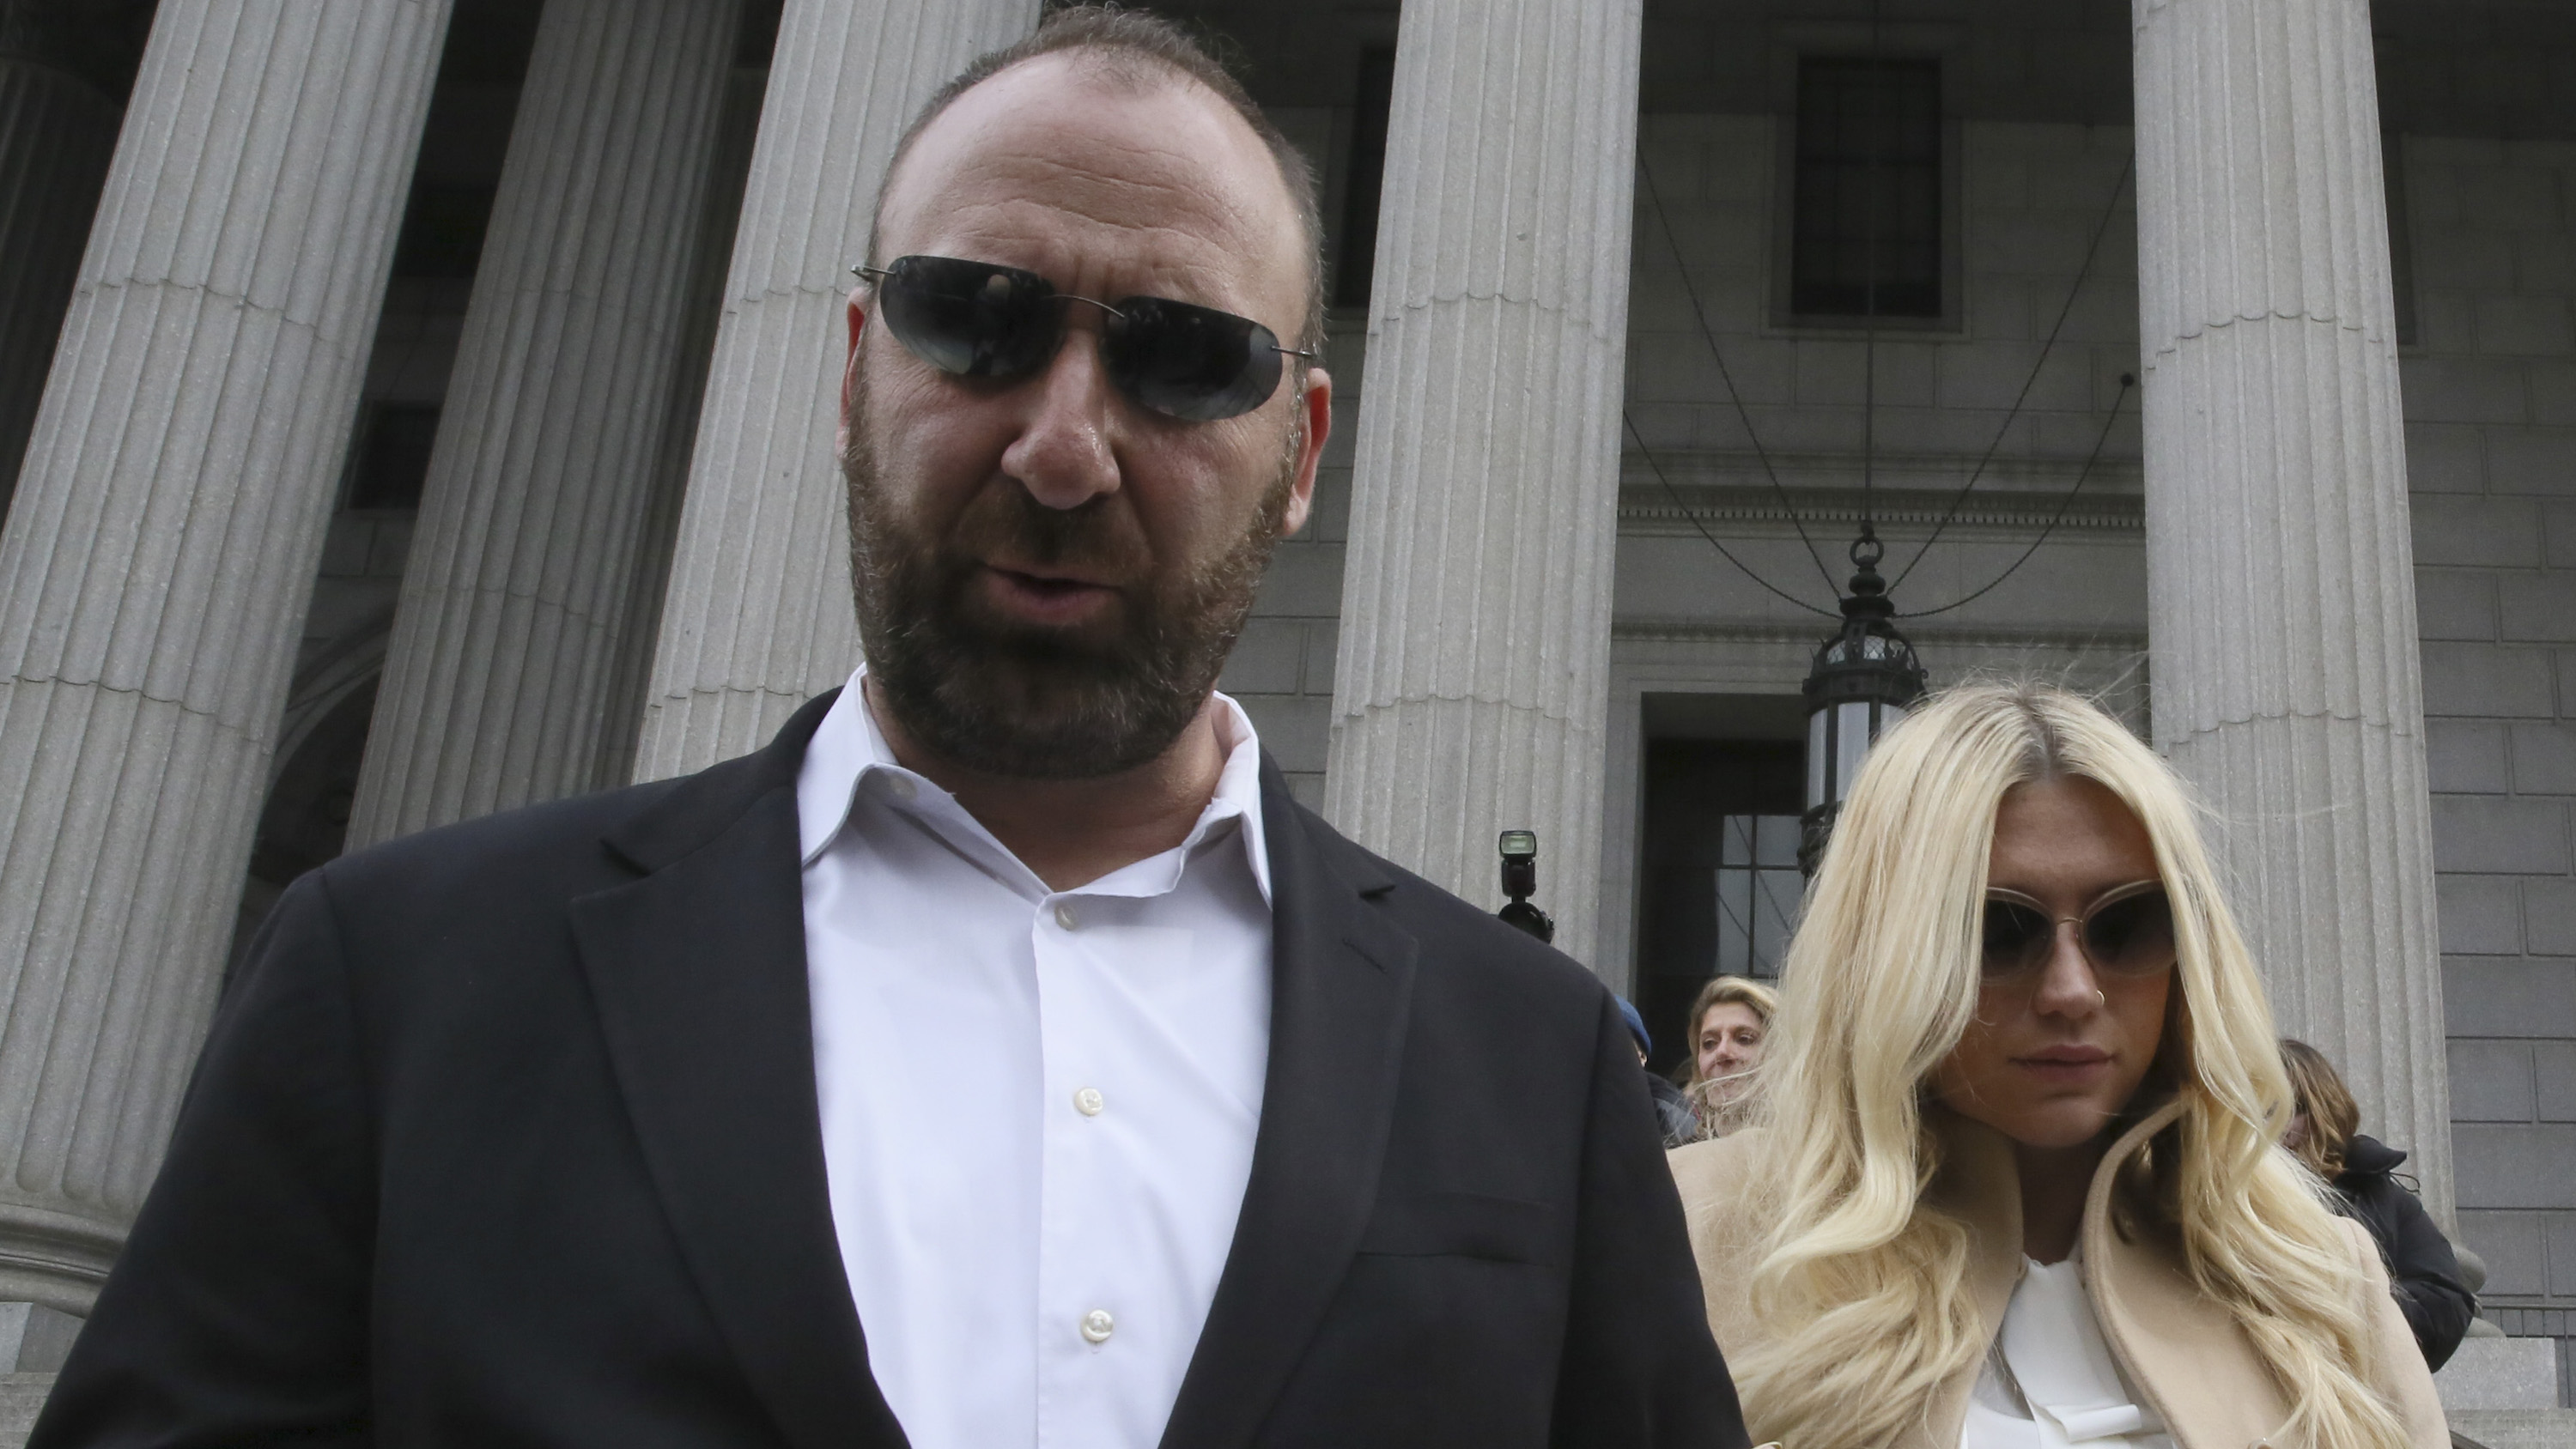 Kesha's case is exposing crucial gaps in contract law.